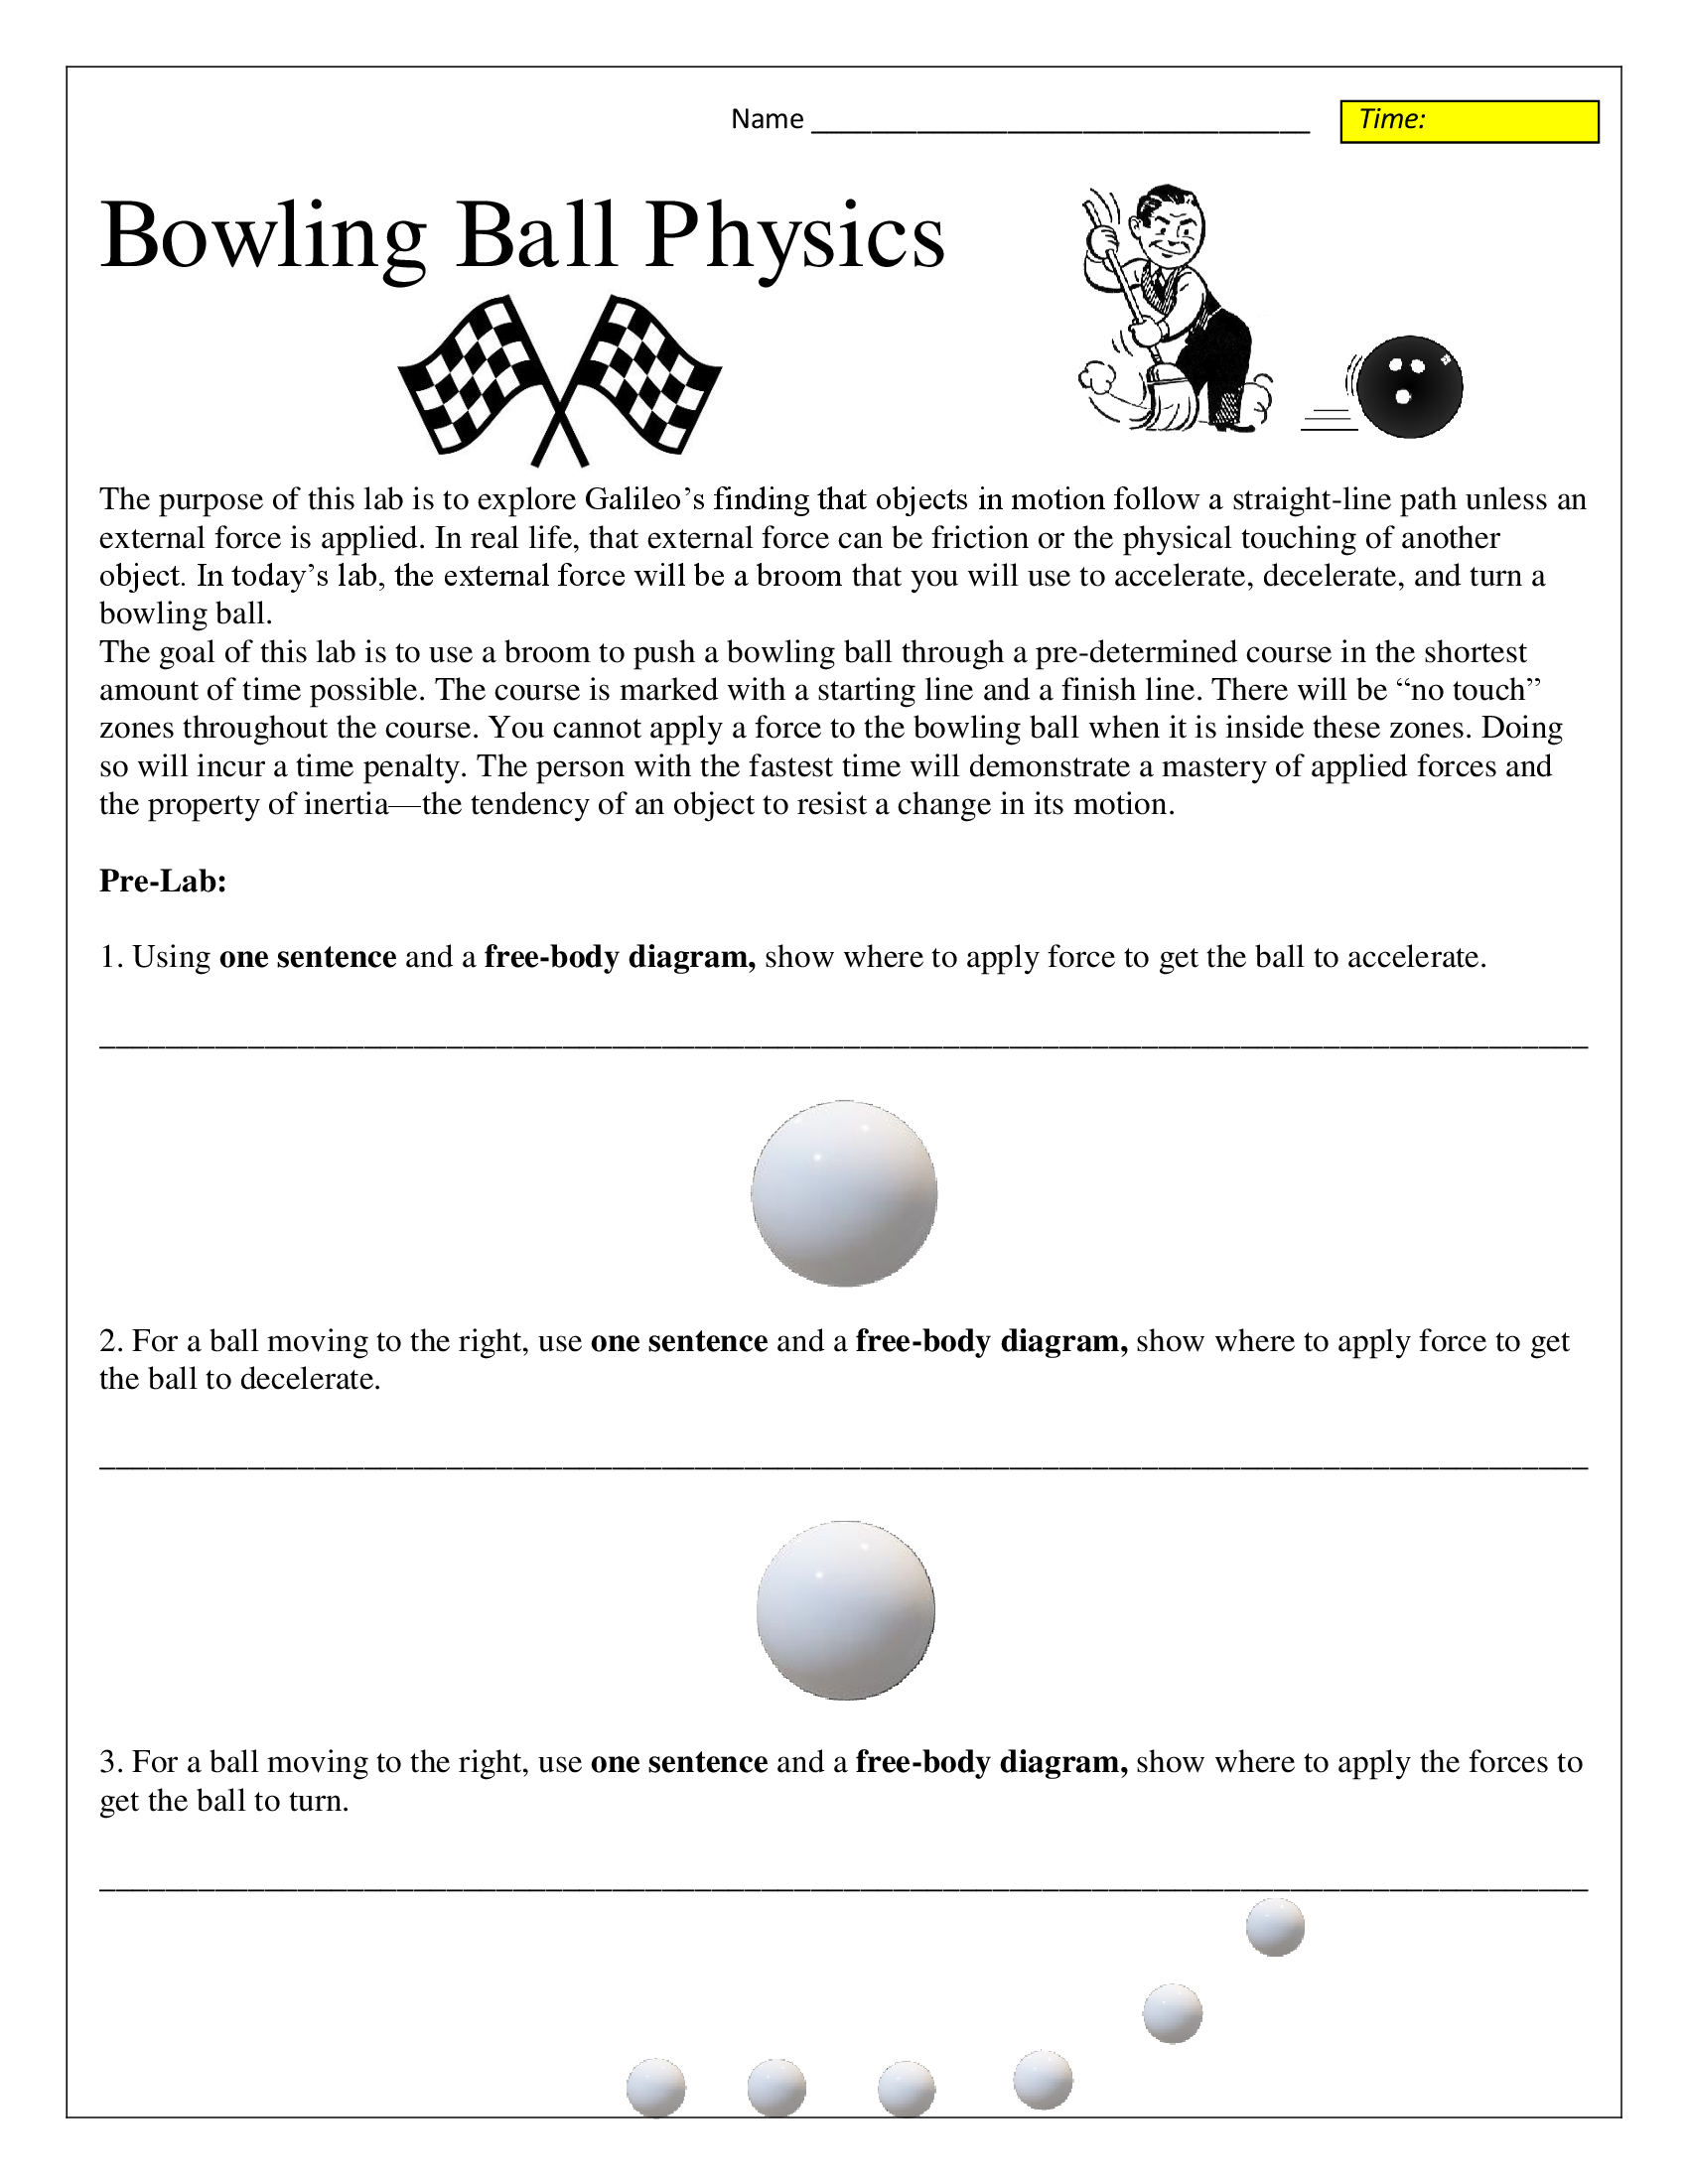 Bowling Worksheets Worksheet On Freebody Diagrams Ball Inertia And Motion Lab Conceptual Science 1700x2200